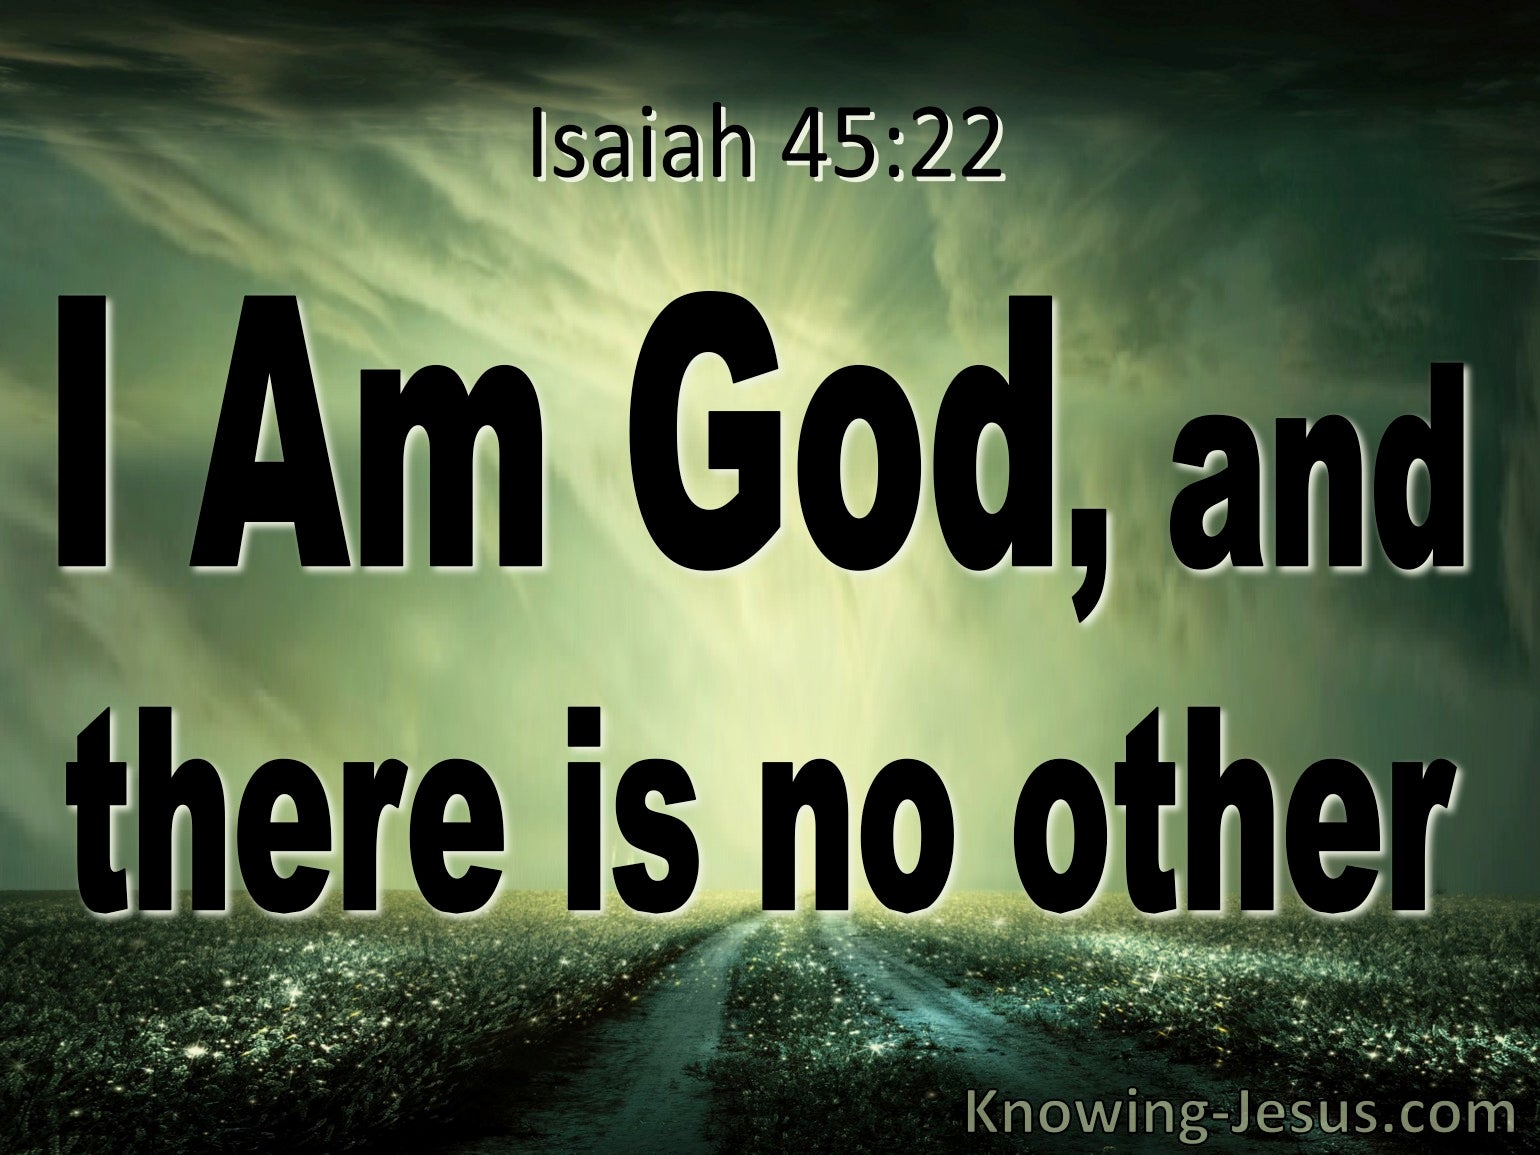 What Does Isaiah 45:22 Mean?